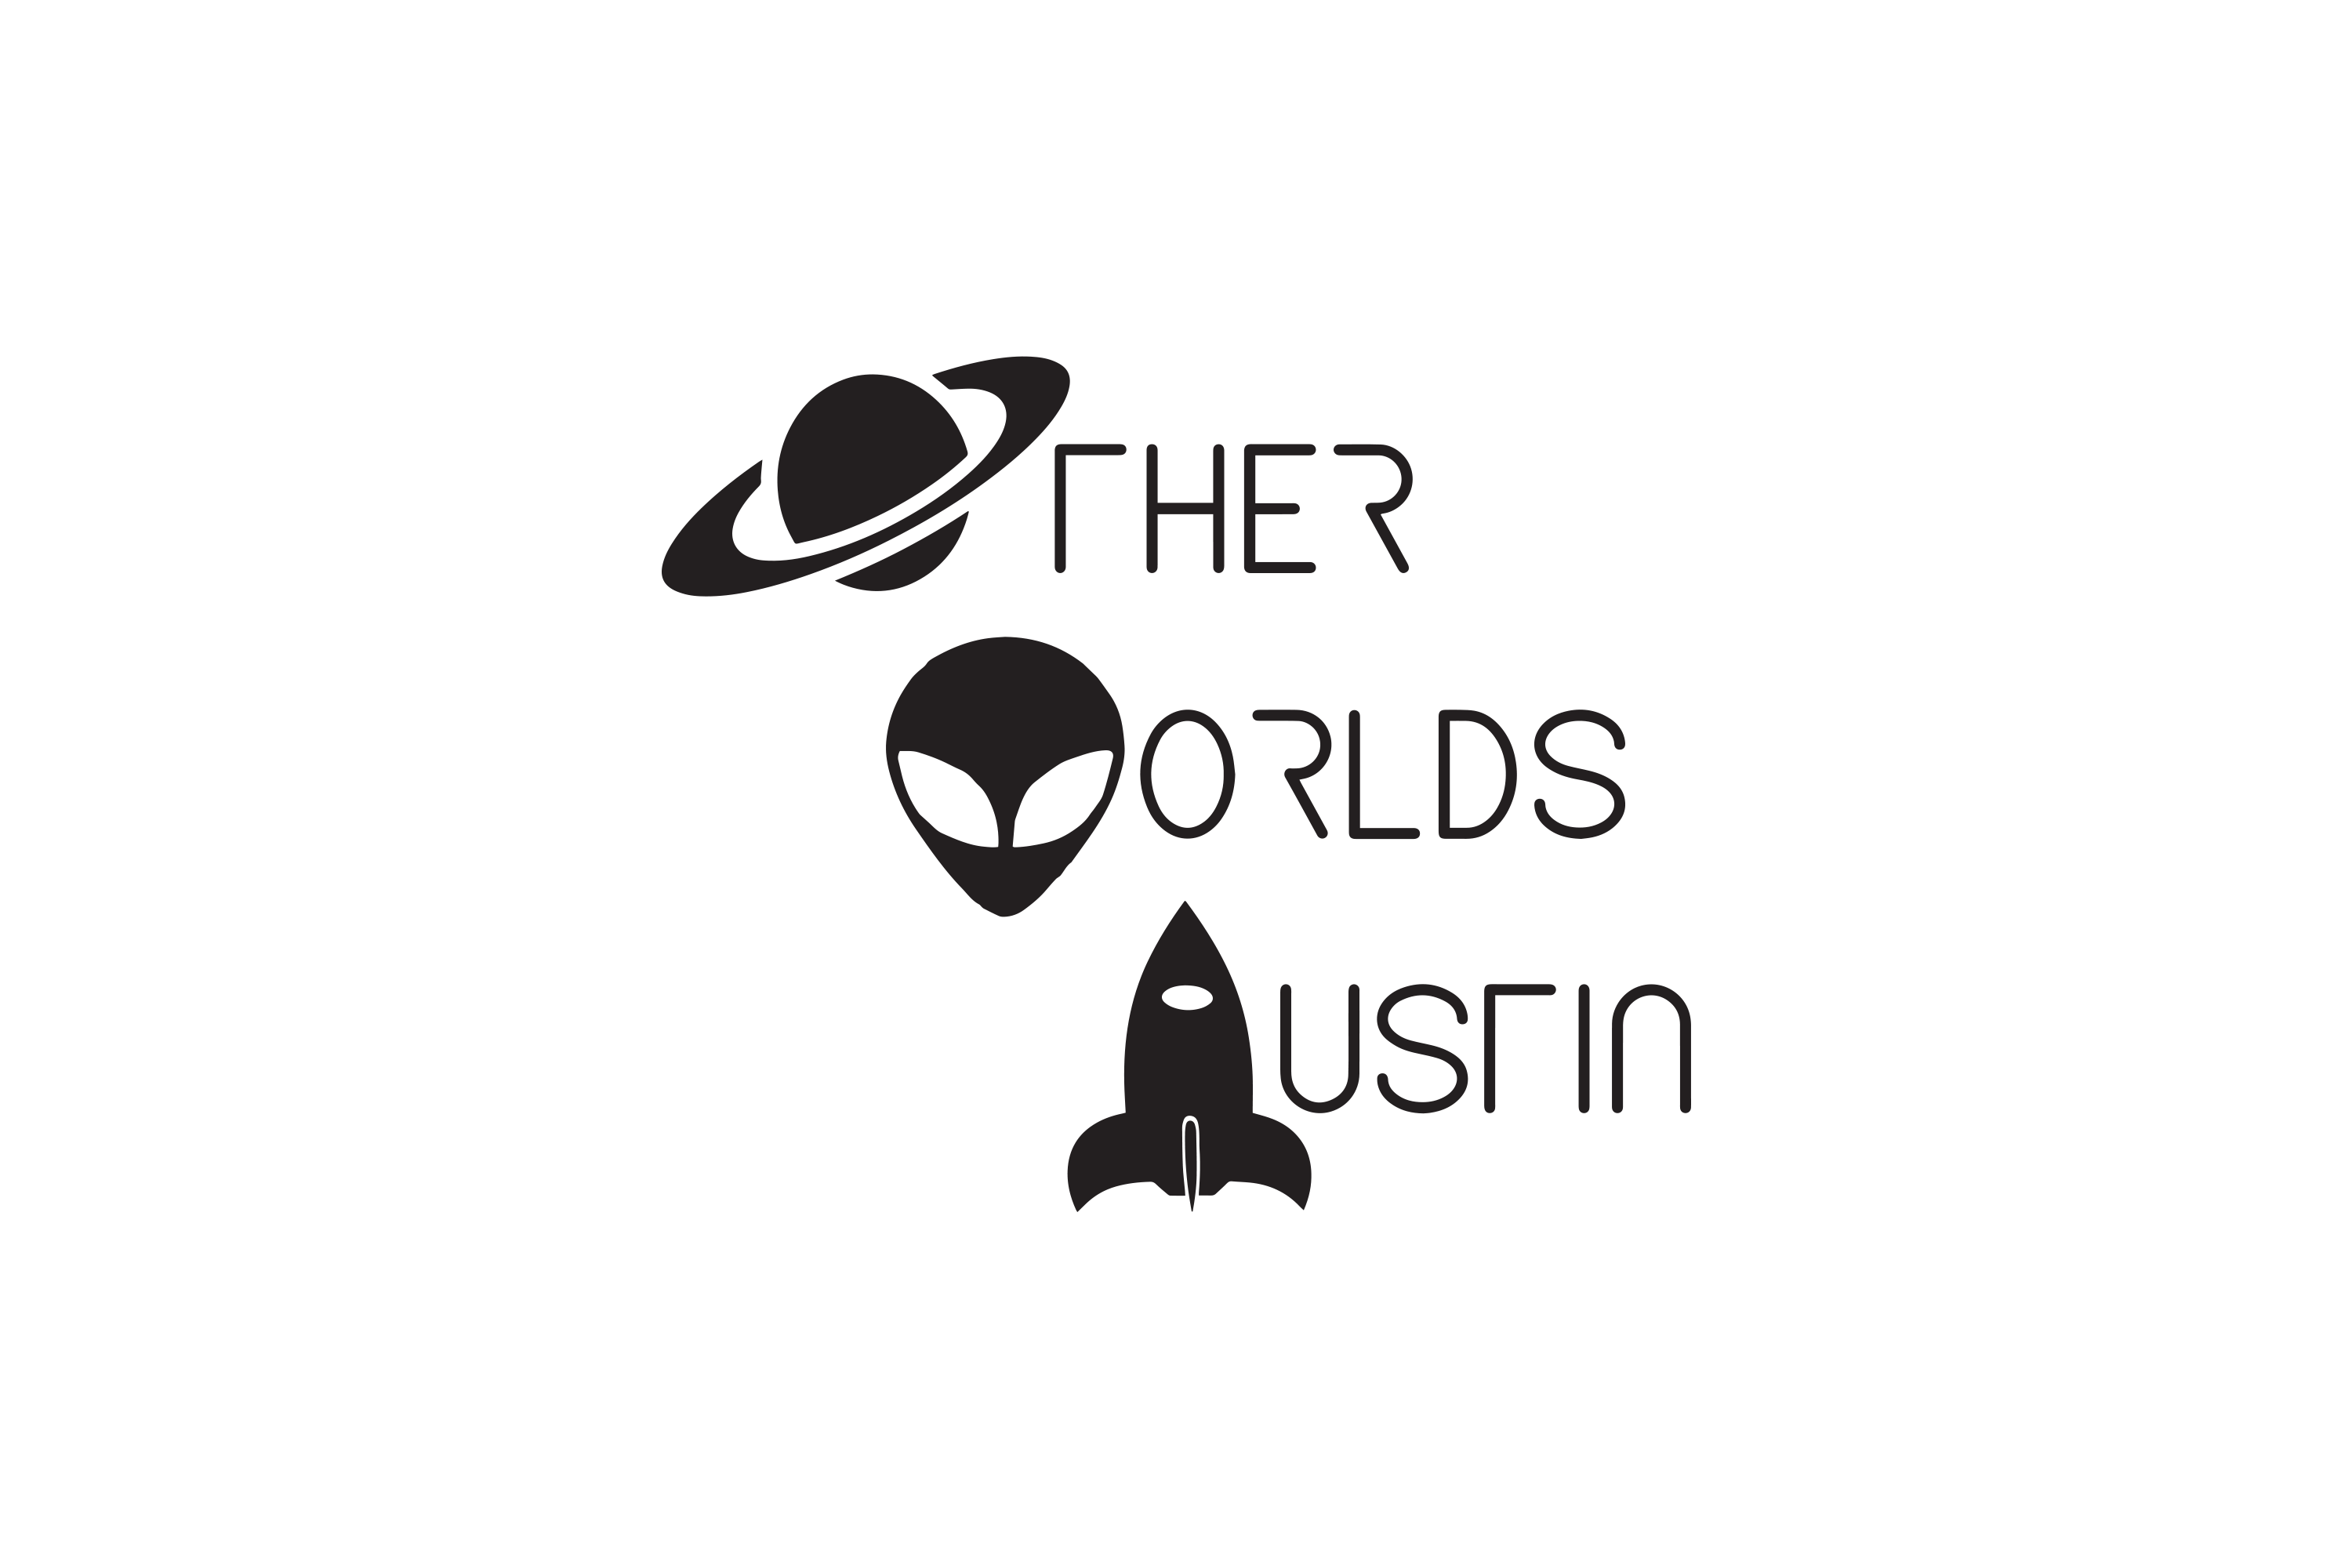 Other Worlds previous logo